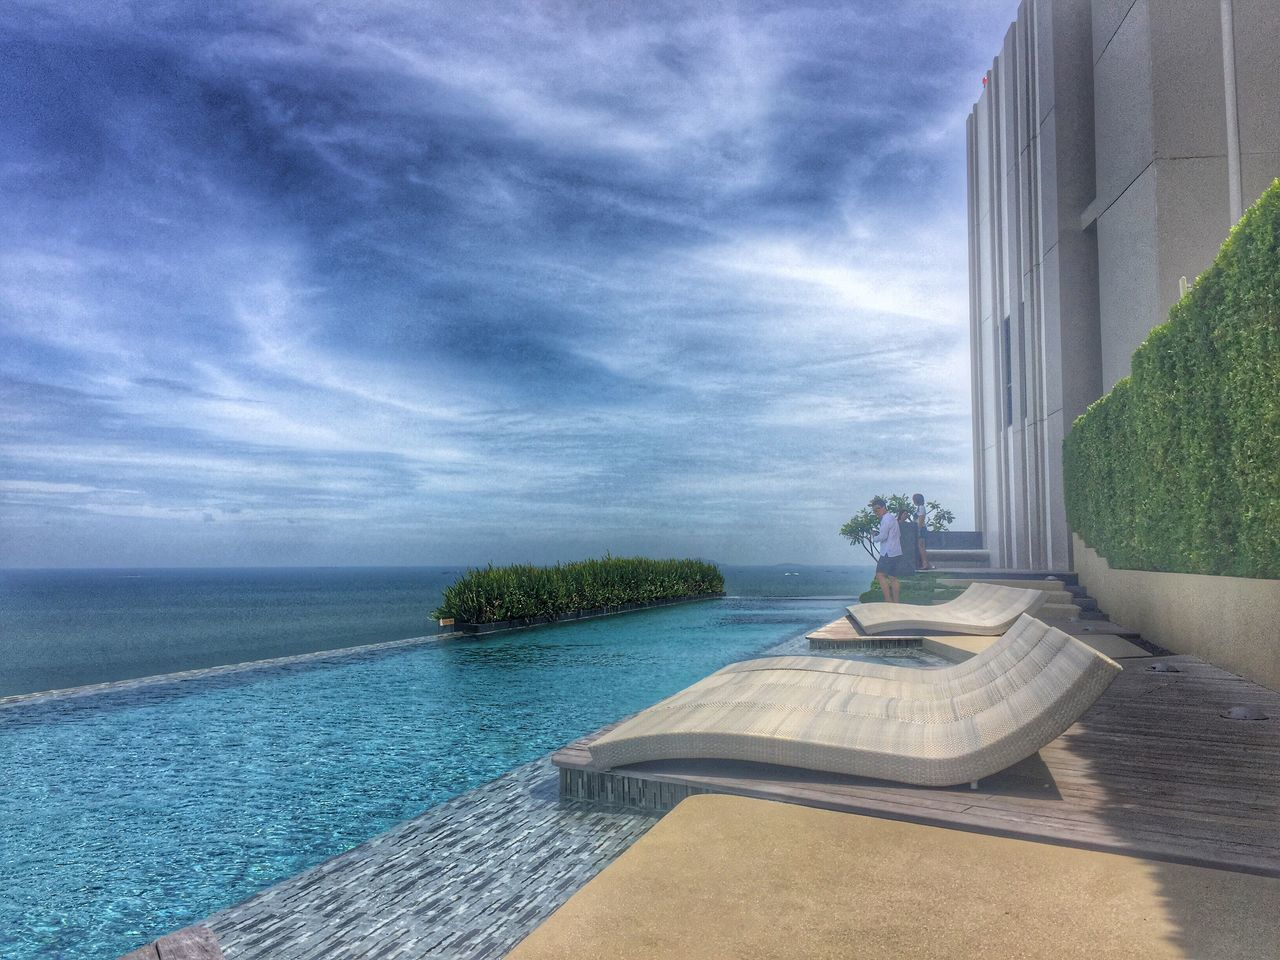 water, swimming pool, sky, architecture, sea, luxury, day, no people, tourist resort, waterfront, built structure, vacations, cloud - sky, horizon over water, modern, outdoors, luxury hotel, scenics, nature, tree, beauty in nature